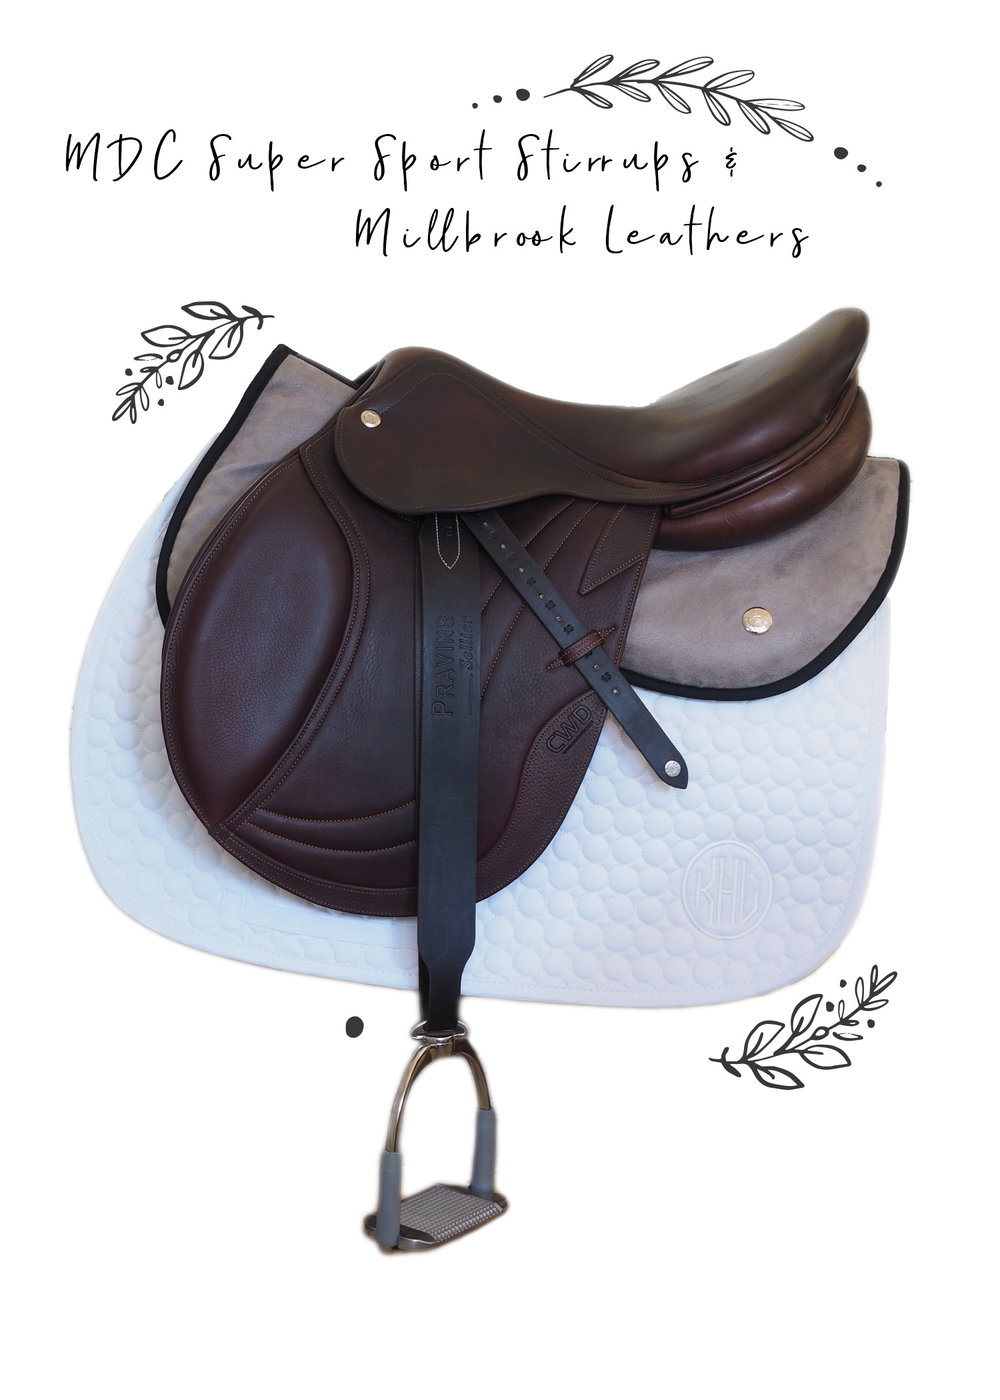 MDC-Stirrups-Millbrook-leathers-review.jpg